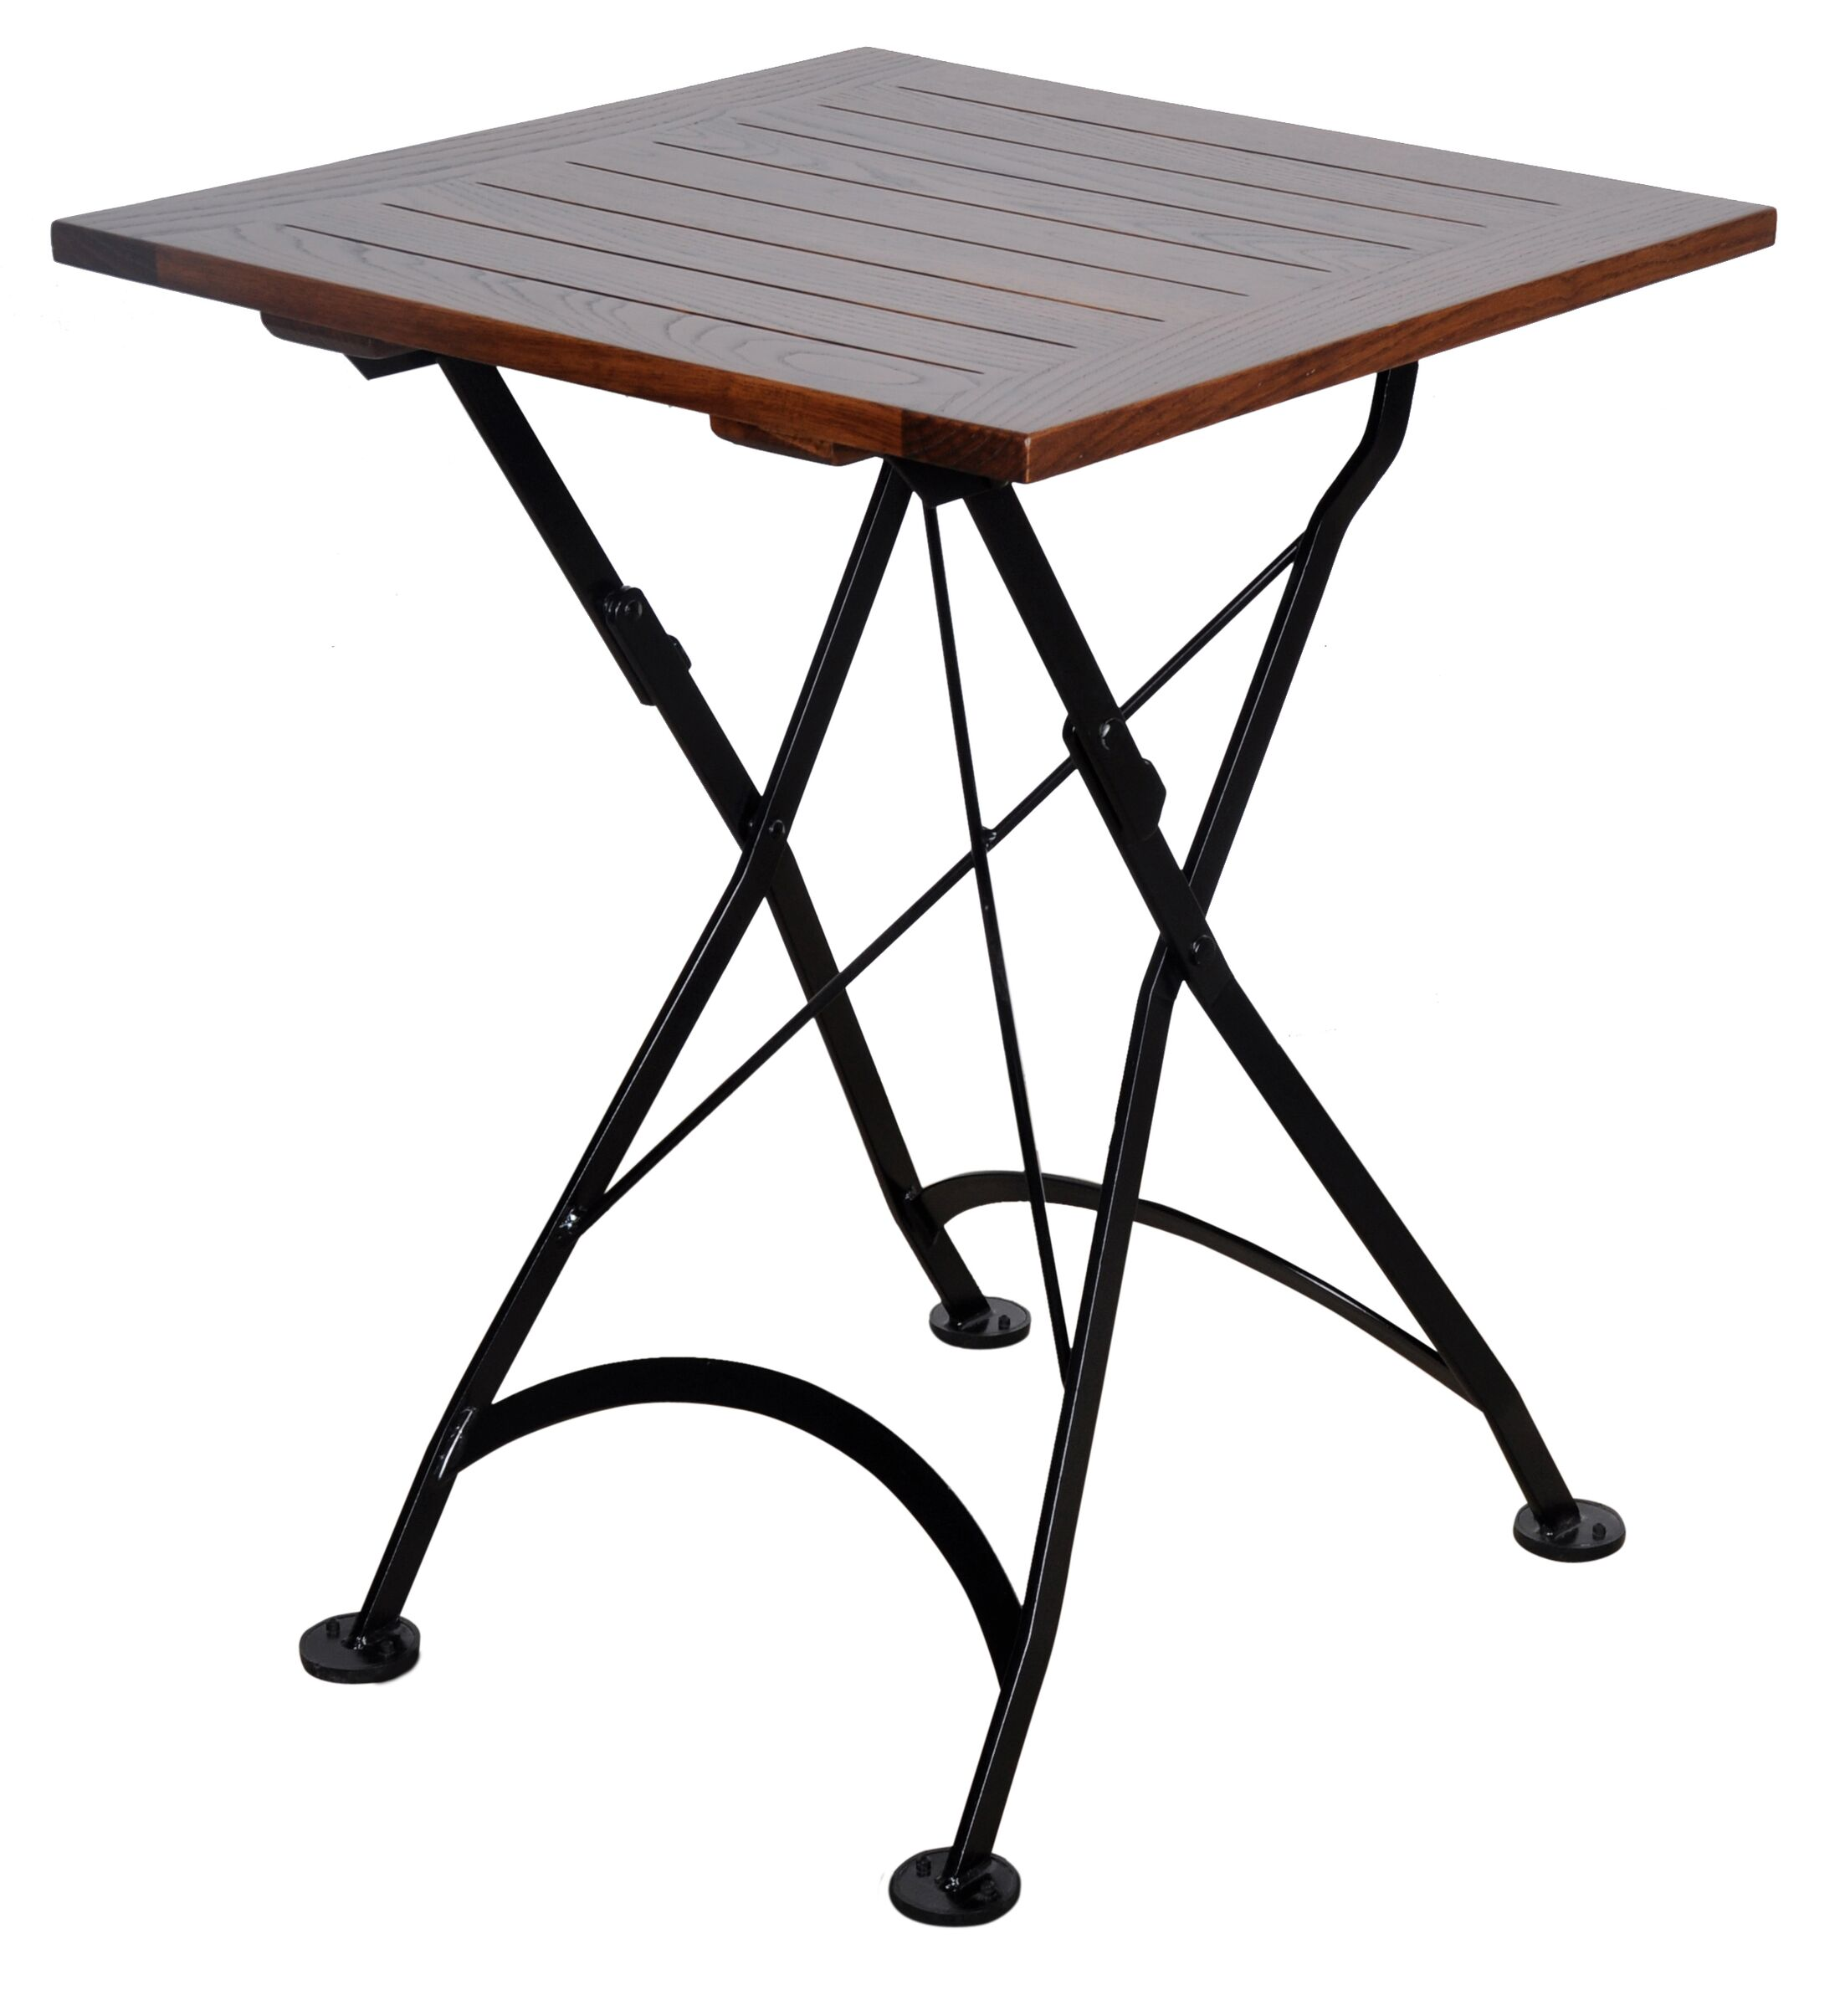 European Caf� Folding Bistro Table Table Size: 24